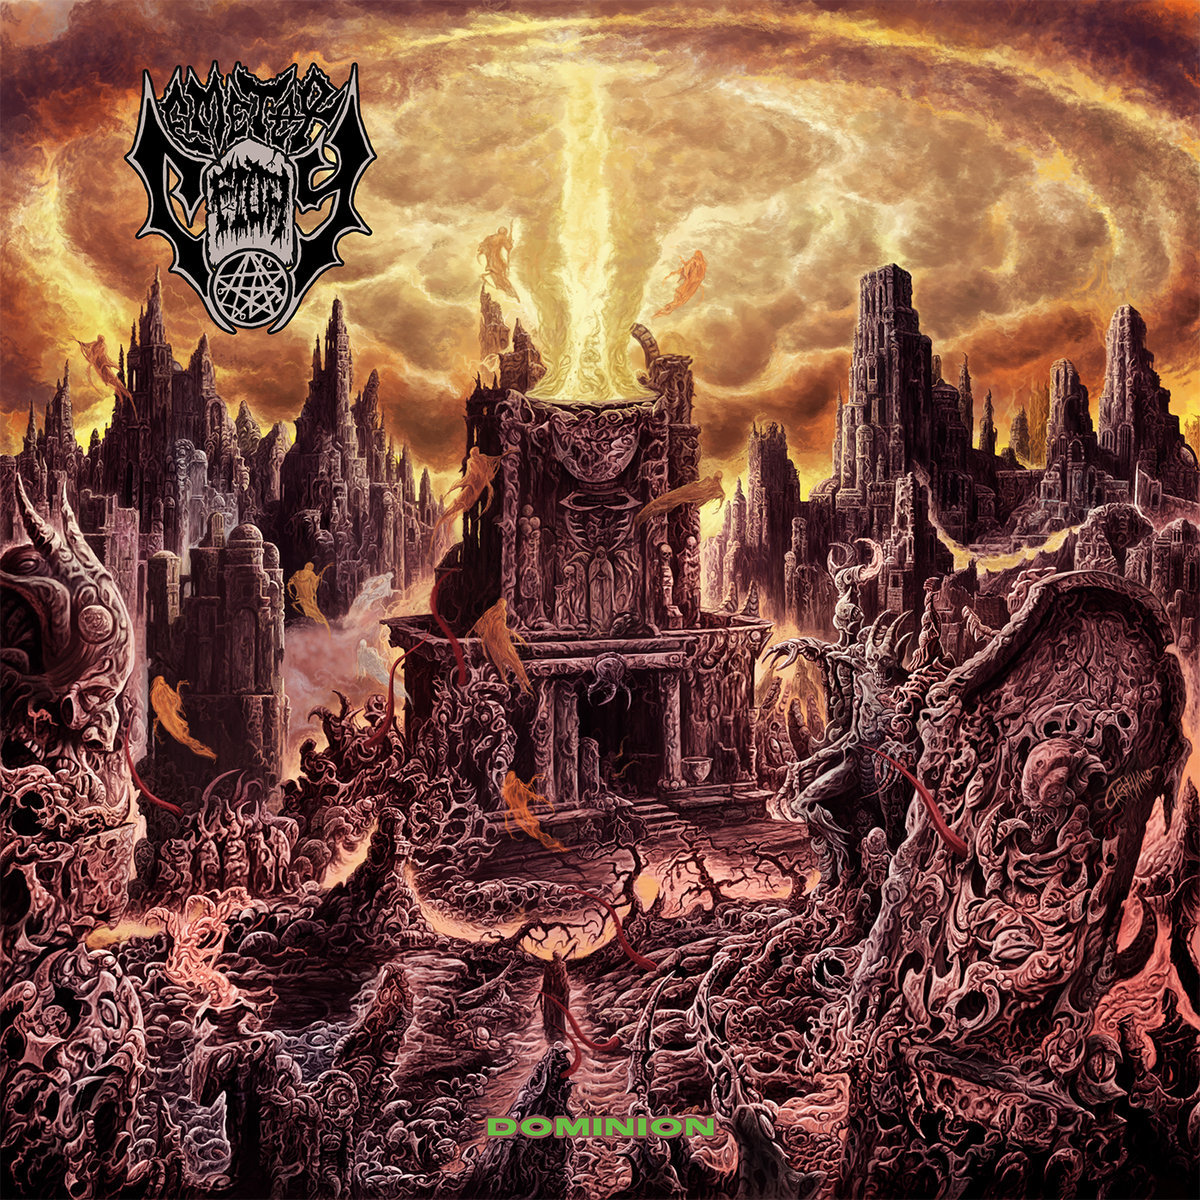 Paralytic Scourge from Dominion by Cemetery Filth  https://www.facebook.com/RBGuy9000/posts/129010042174646…  𝕎𝕖 𝕣𝕖𝕒𝕝𝕝𝕪 𝕟𝕖𝕖𝕕 𝕪𝕠𝕦𝕣 𝕙𝕖𝕝𝕡!  𝕝𝕚𝕜𝕖  𝕔𝕠𝕞𝕞𝕖𝕟𝕥  𝕤𝕙𝕒𝕣𝕖  #music #metalmusic #metal #follow #techdeath #song #radio #deathmetal #bandcamp #heavymetal #thrashmetal #bandpic.twitter.com/tdfwWqbqPg